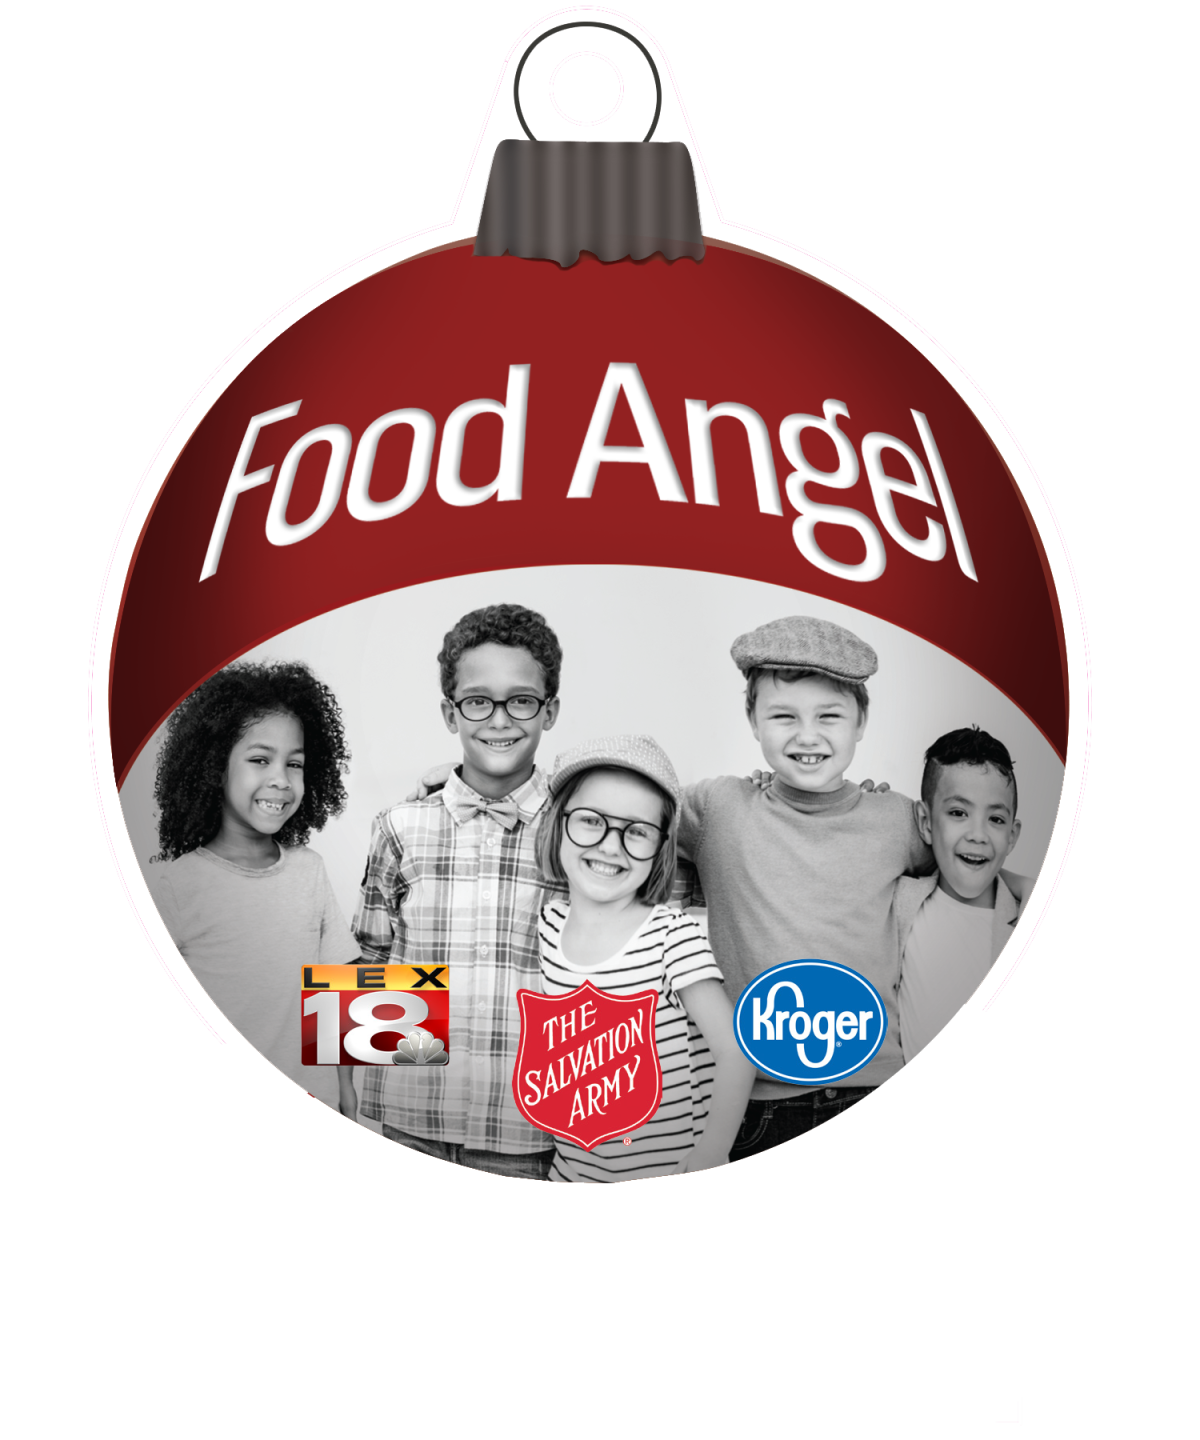 Central Kentucky Salvation Army Food Angel